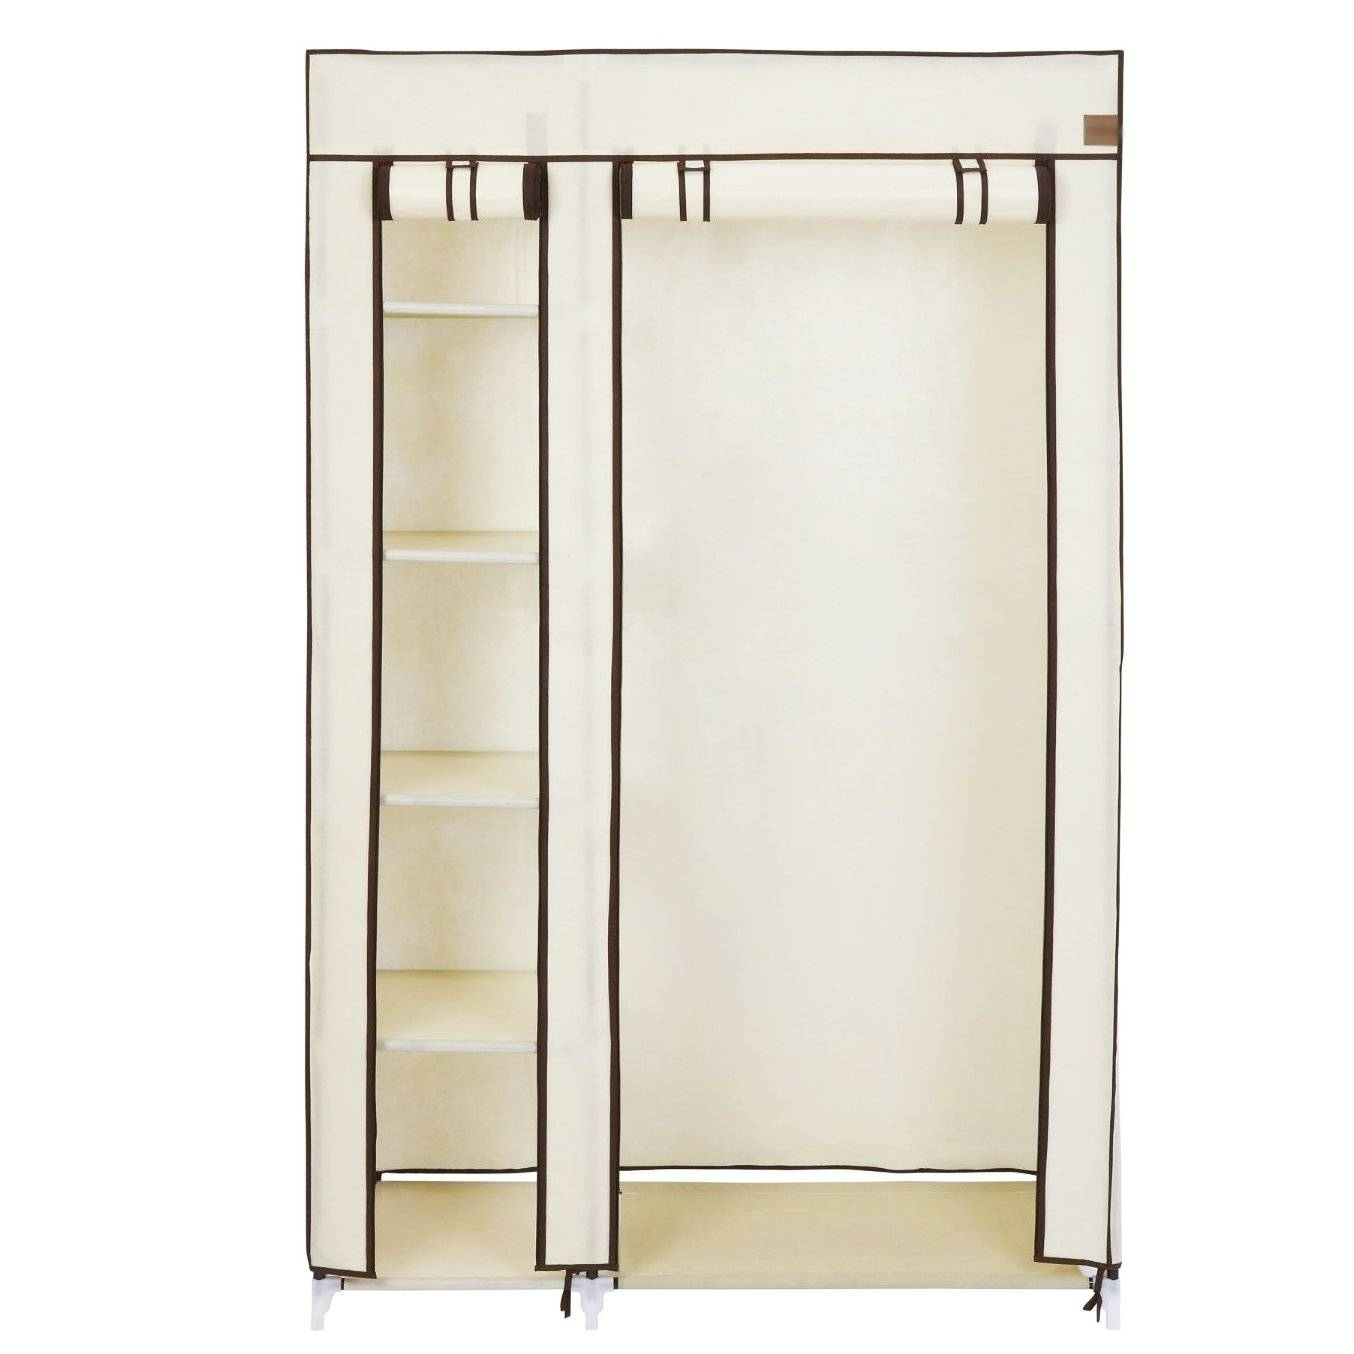 Double Cream Canvas Wardrobe Clothes Rail Hanging Storage Closet for Double Rail Canvas Wardrobes (Image 9 of 30)